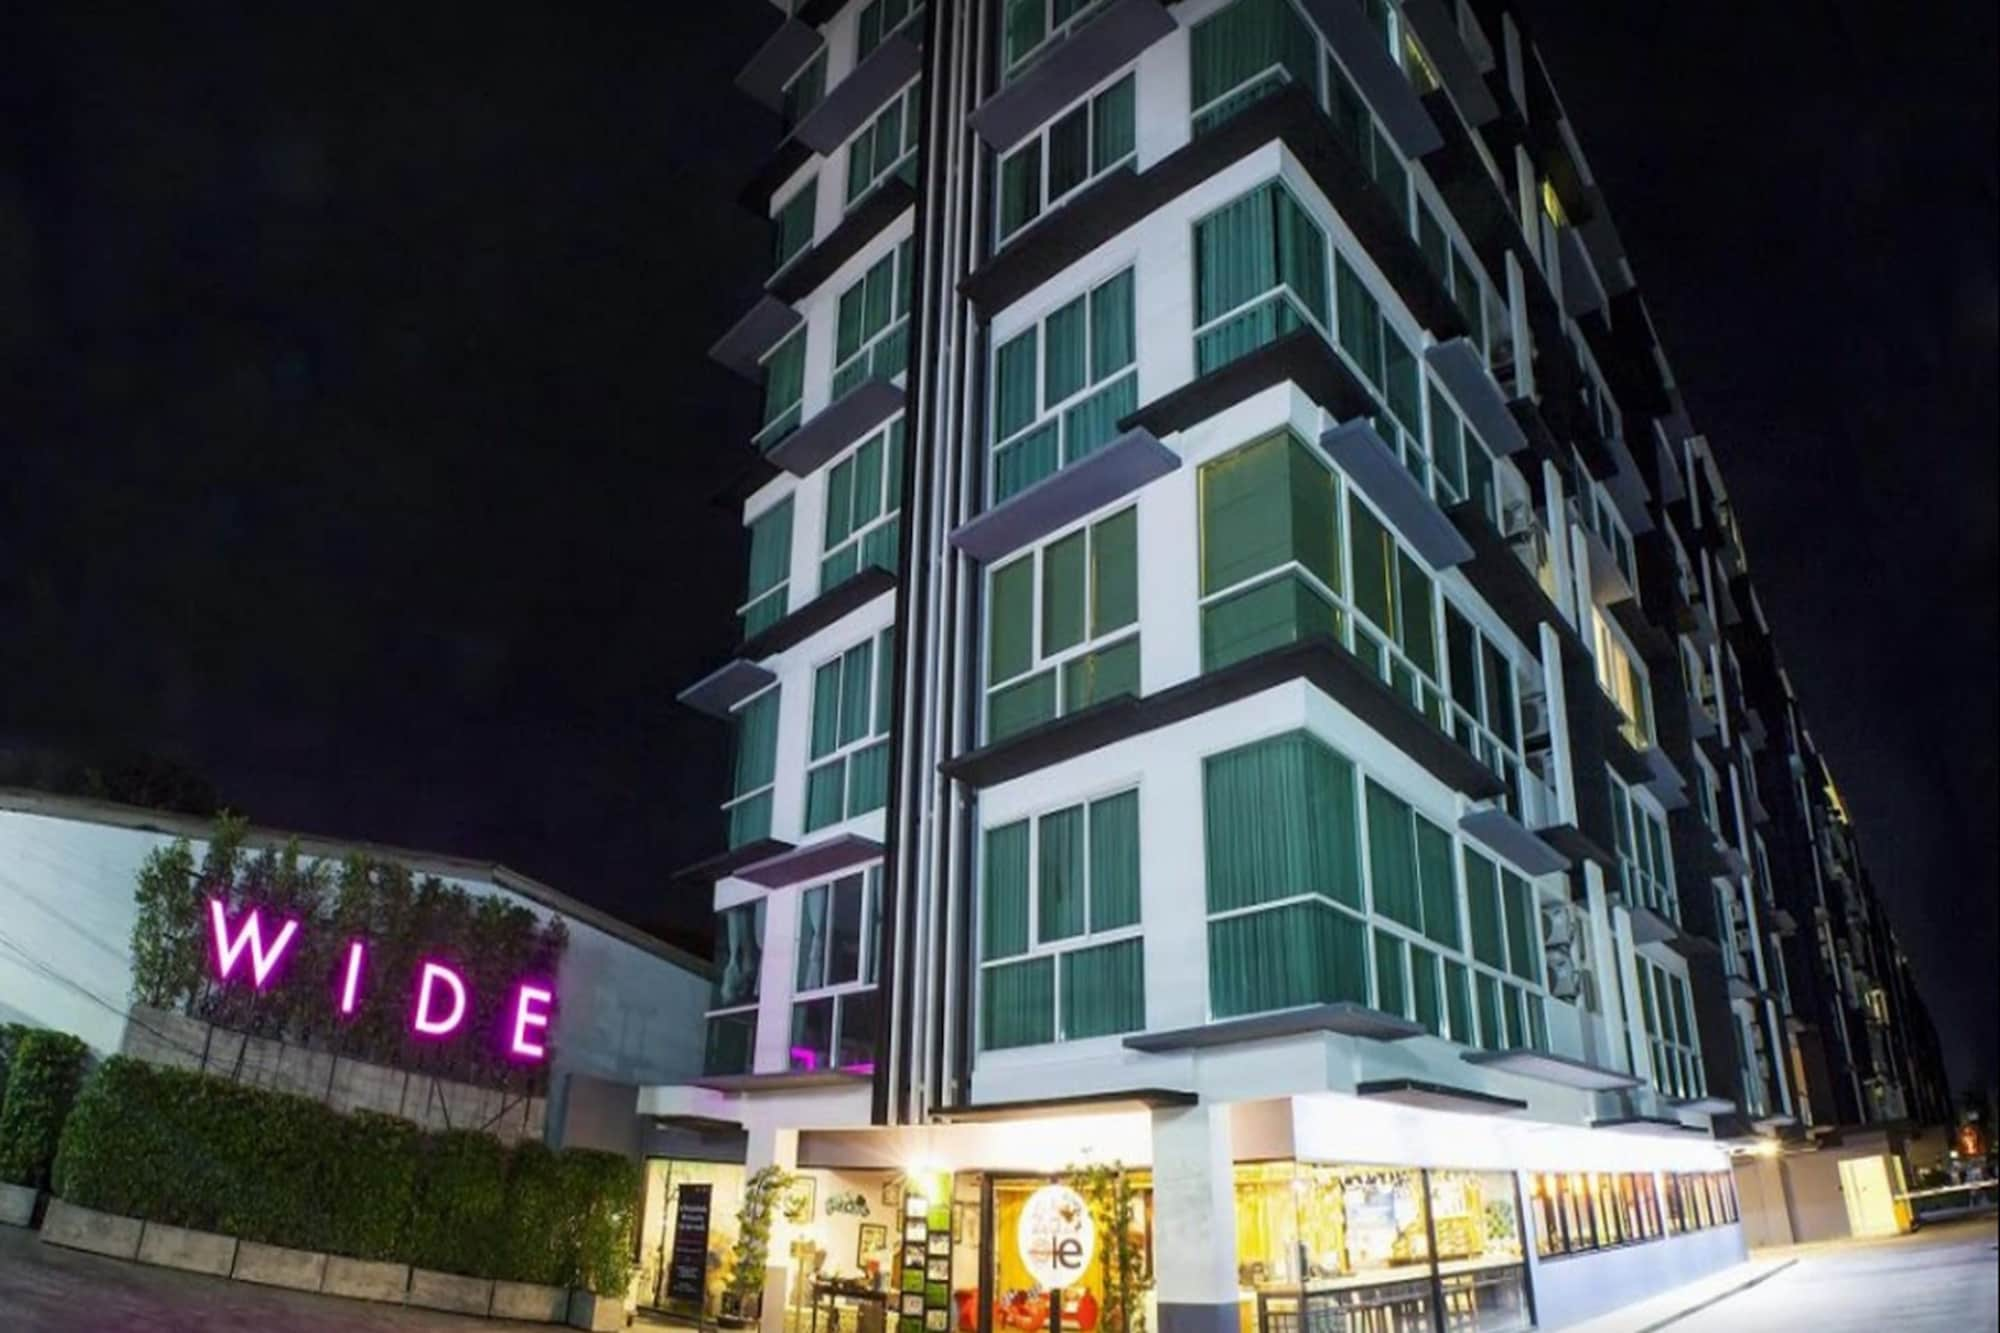 The WIDE Condotel - Phuket, Pulau Phuket